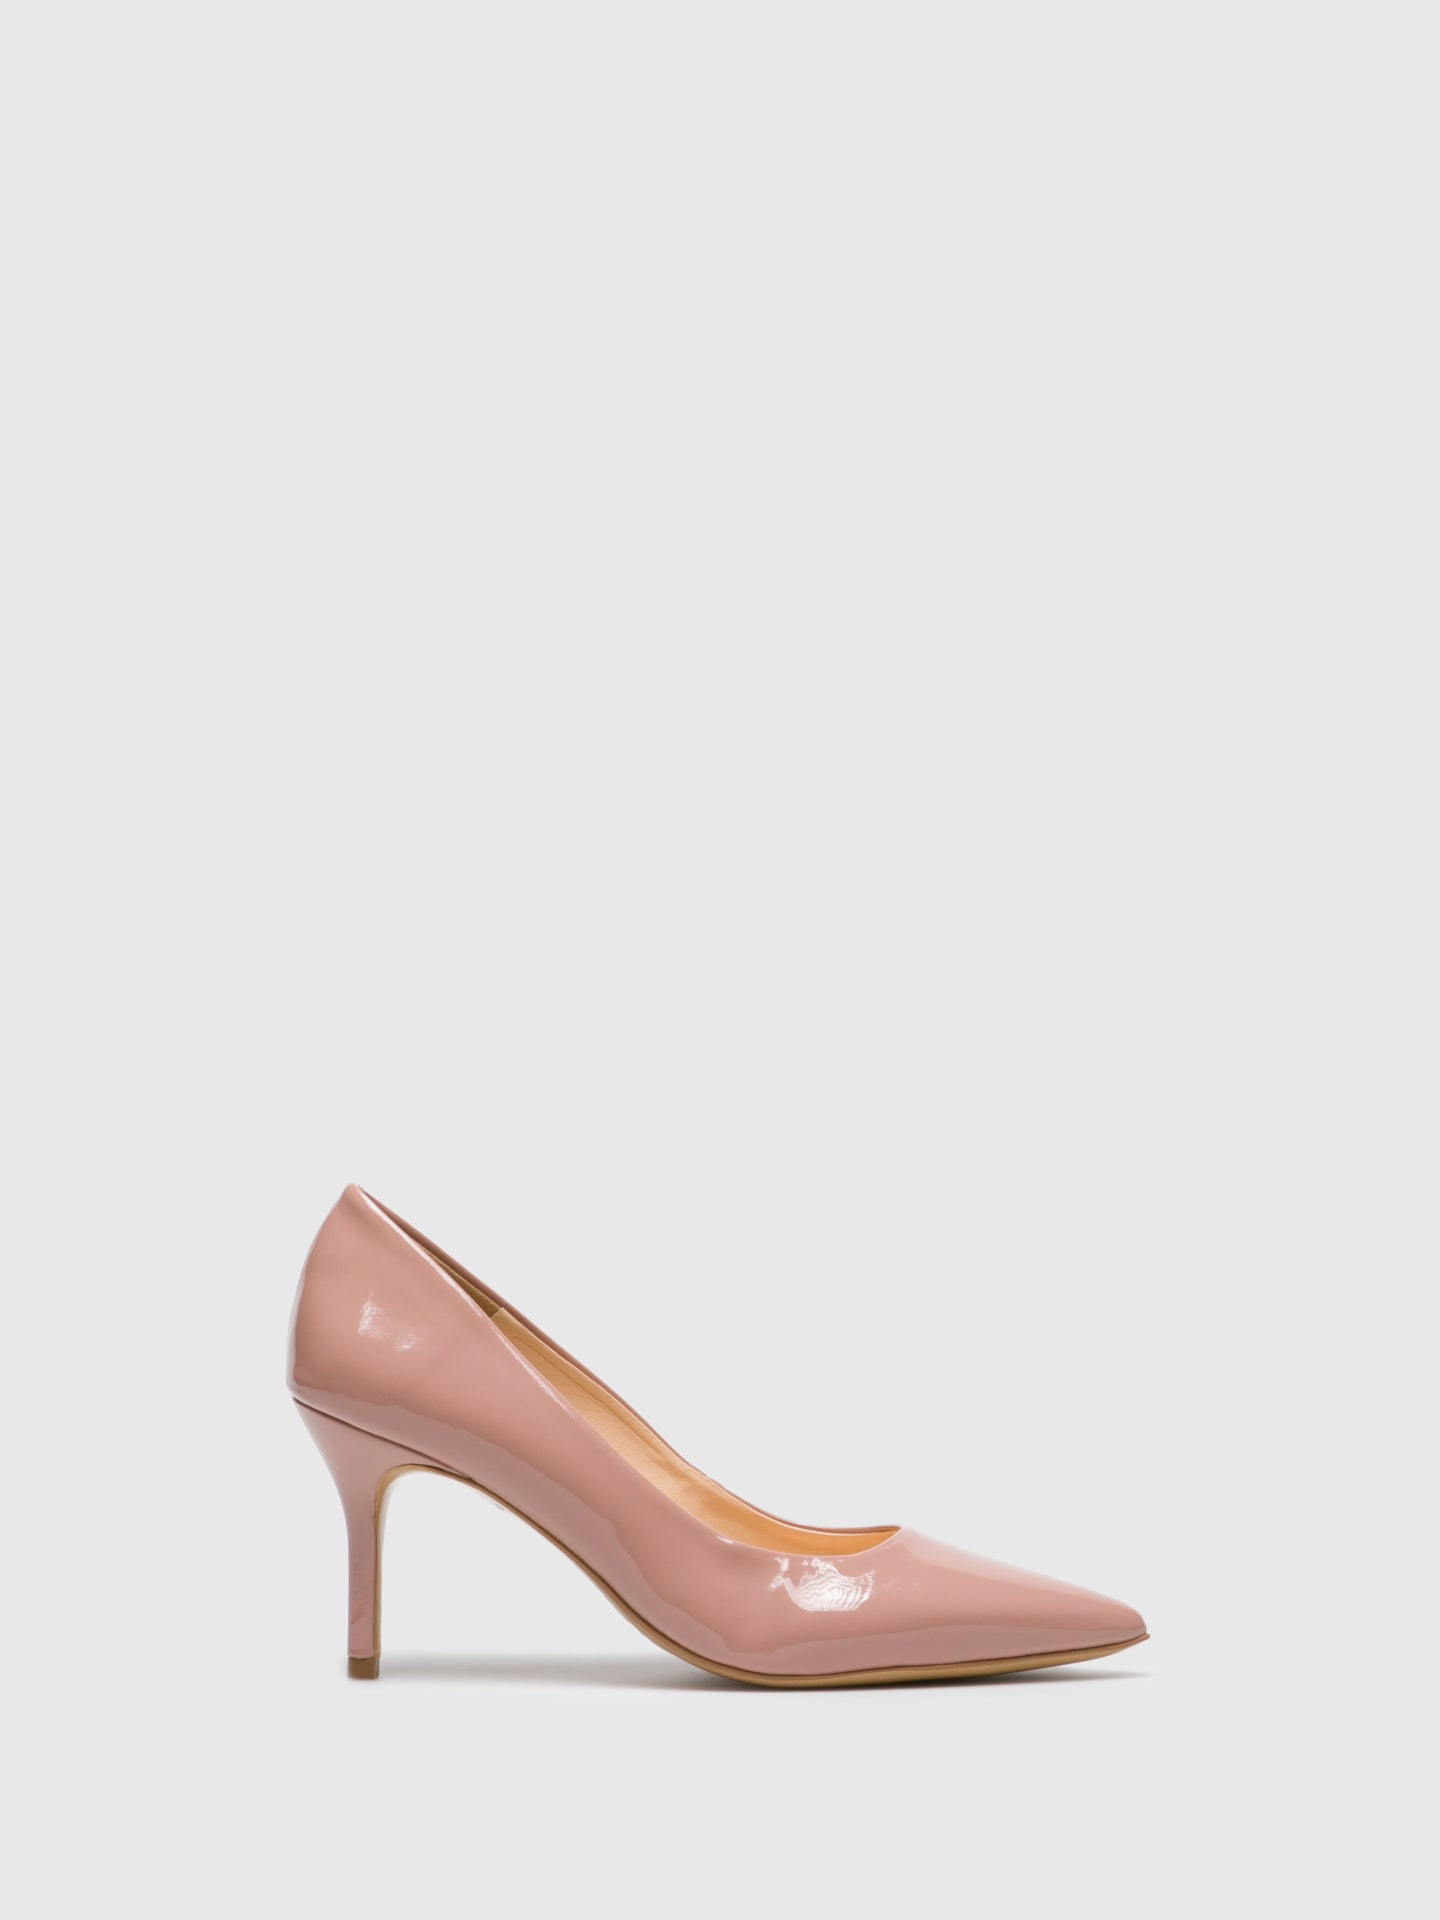 PATRICIA CORREIA LightPink Pointed Toe Shoes